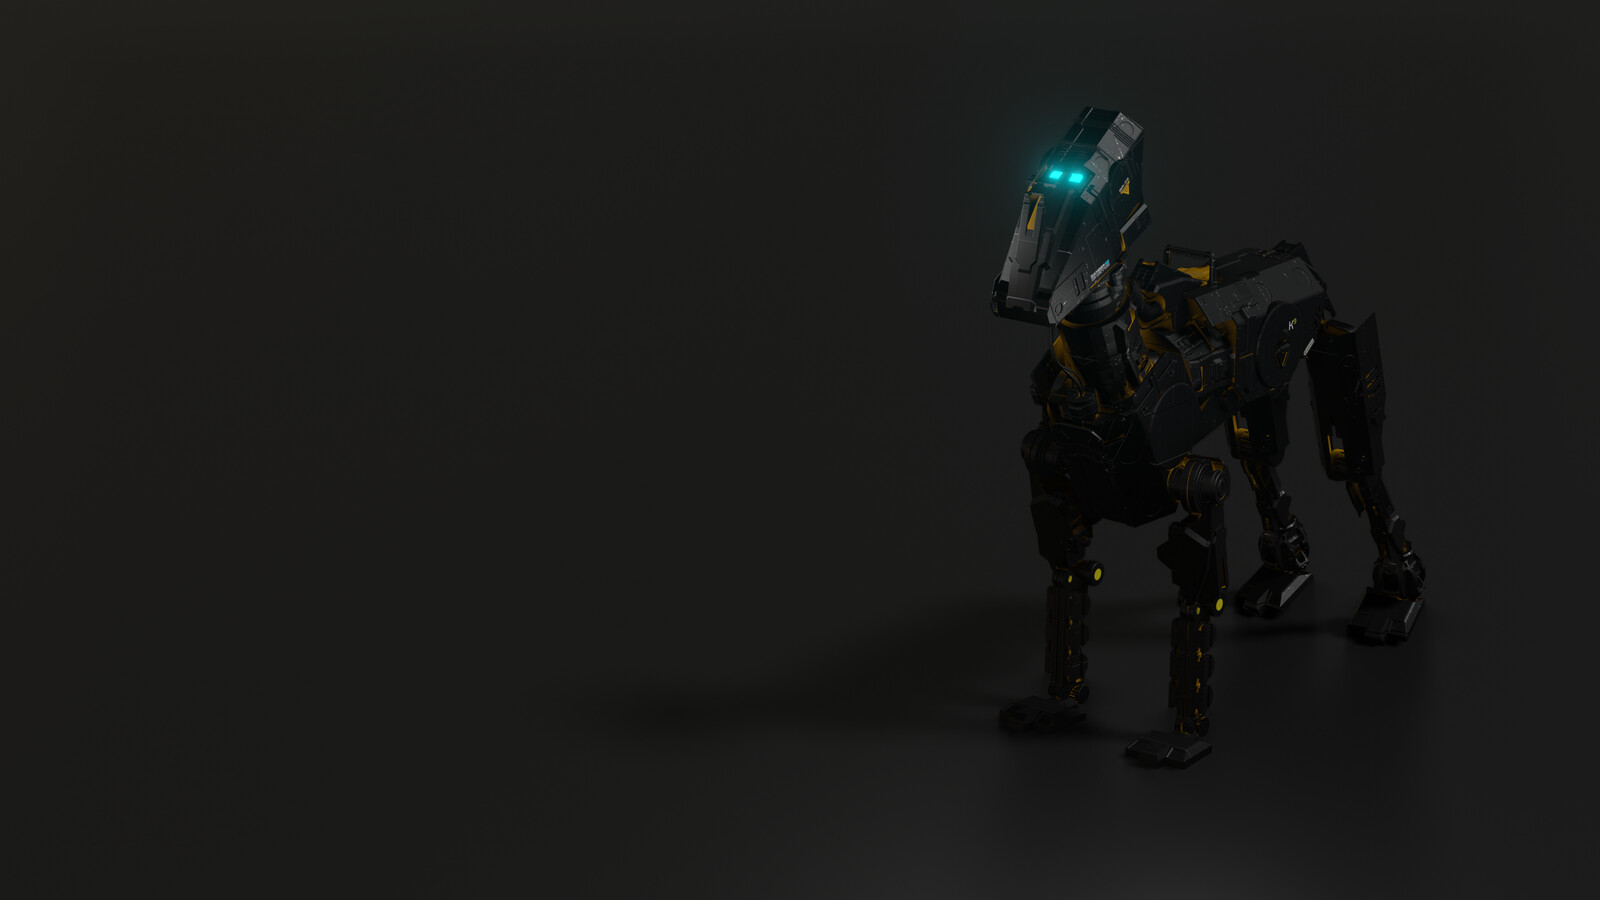 Mecha Robo Dog - Blender EEVEE